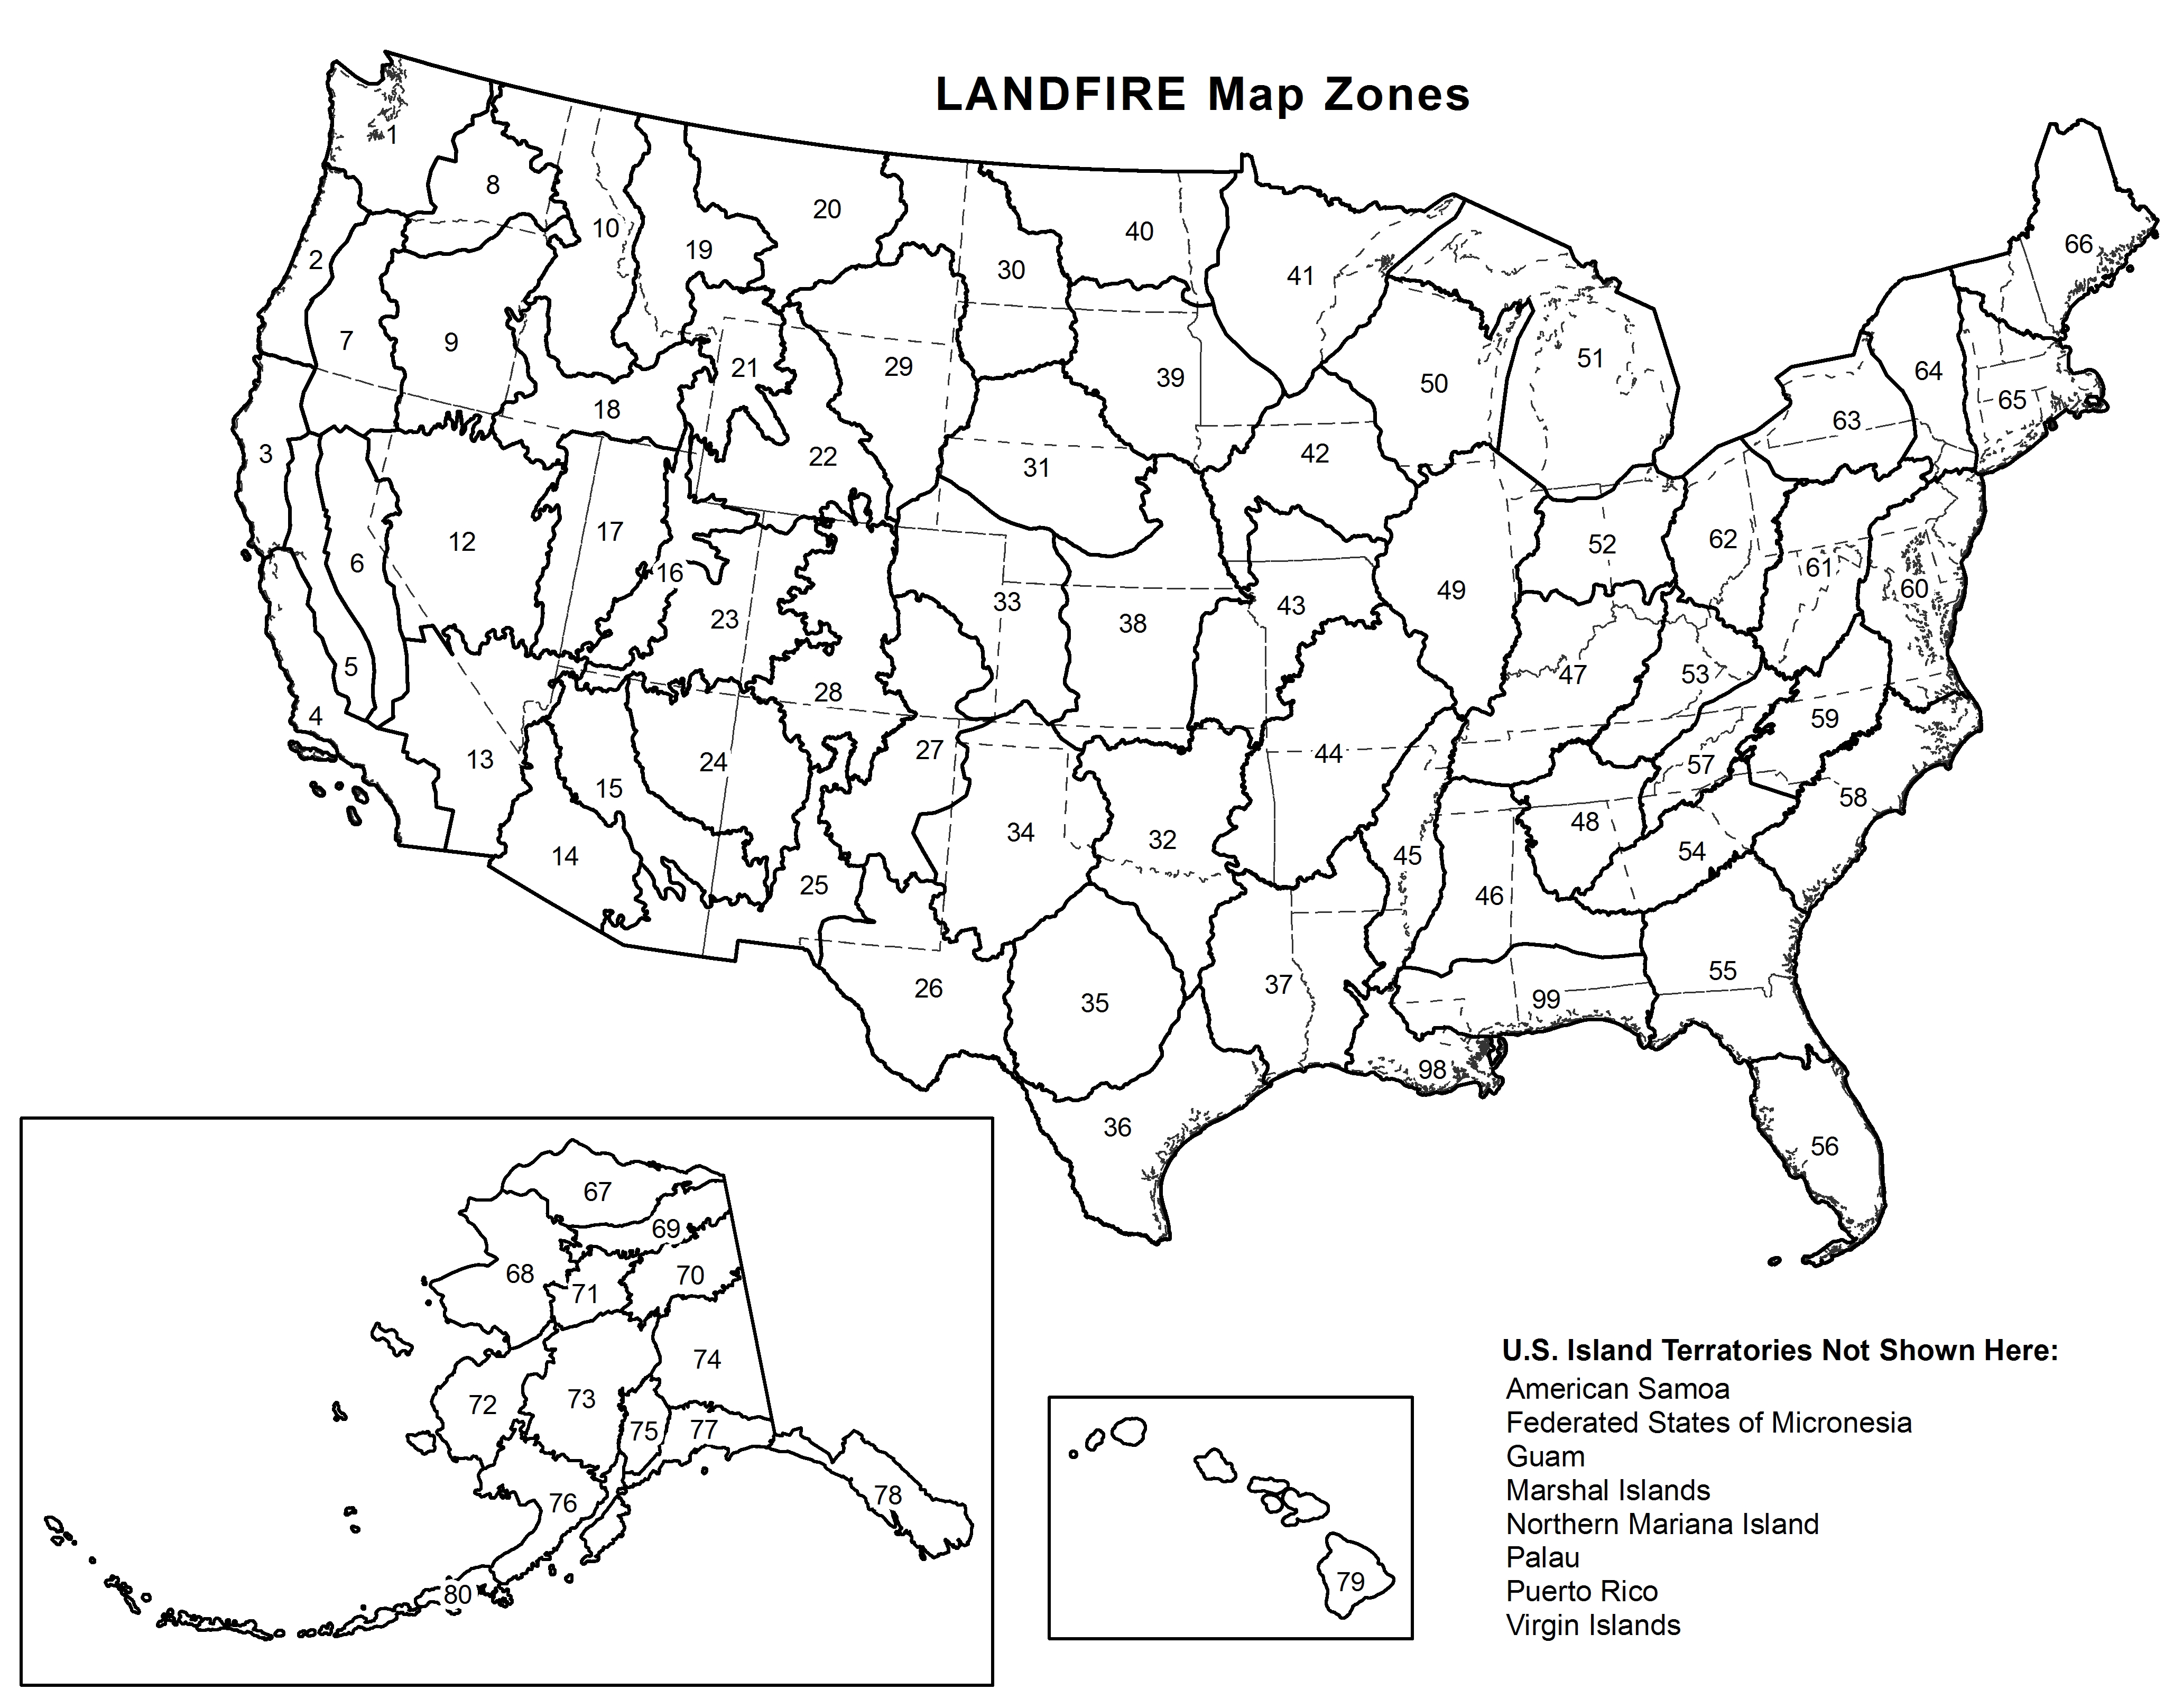 Larger LANDFIRE Map Zone Image